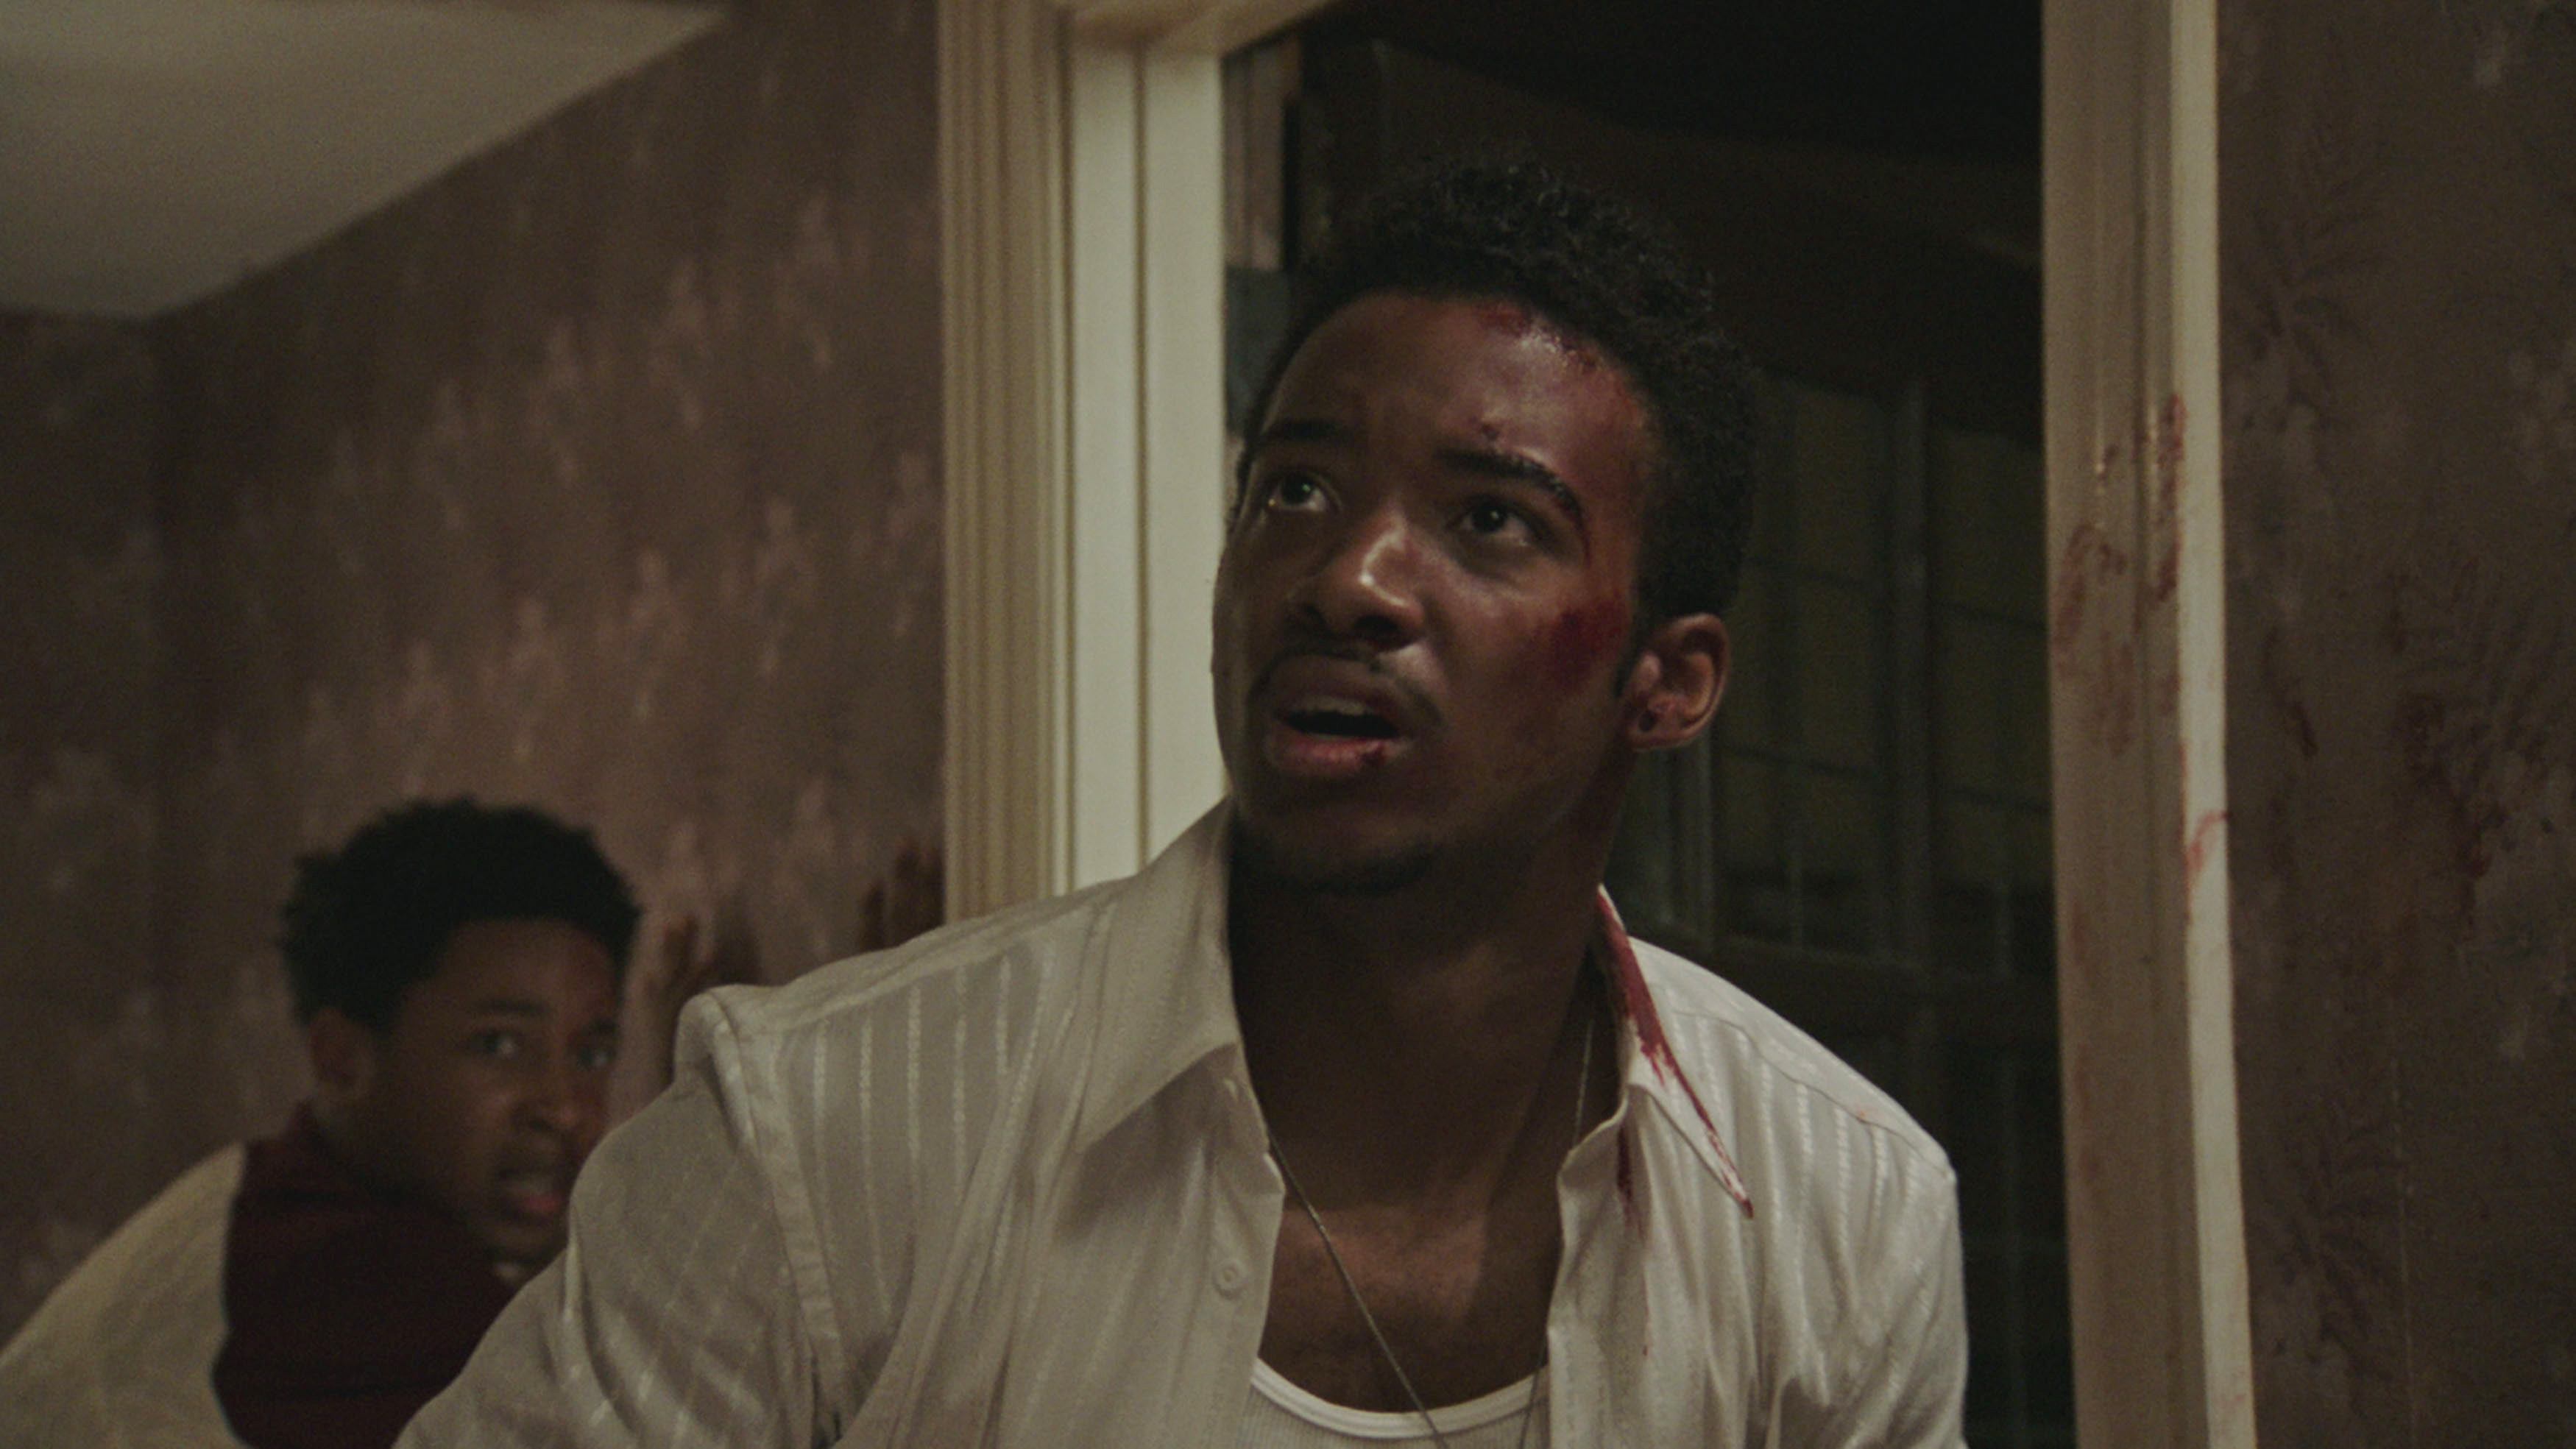 Algee Smith stars as 'Larry'